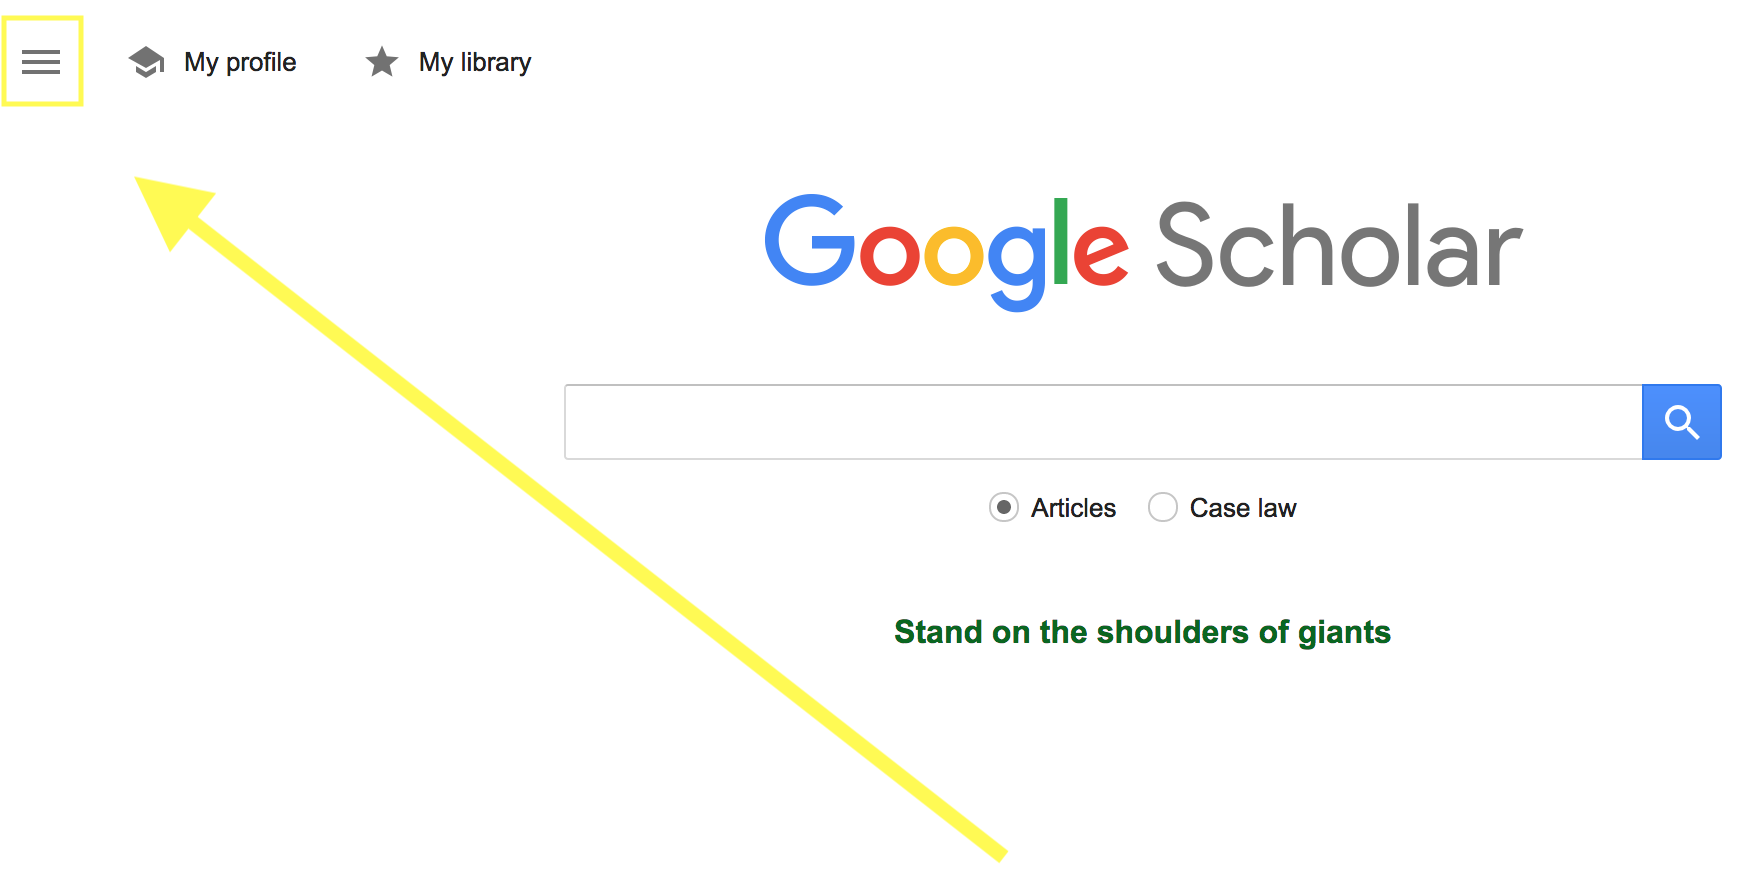 Location to click for Google Scholar Menu Options